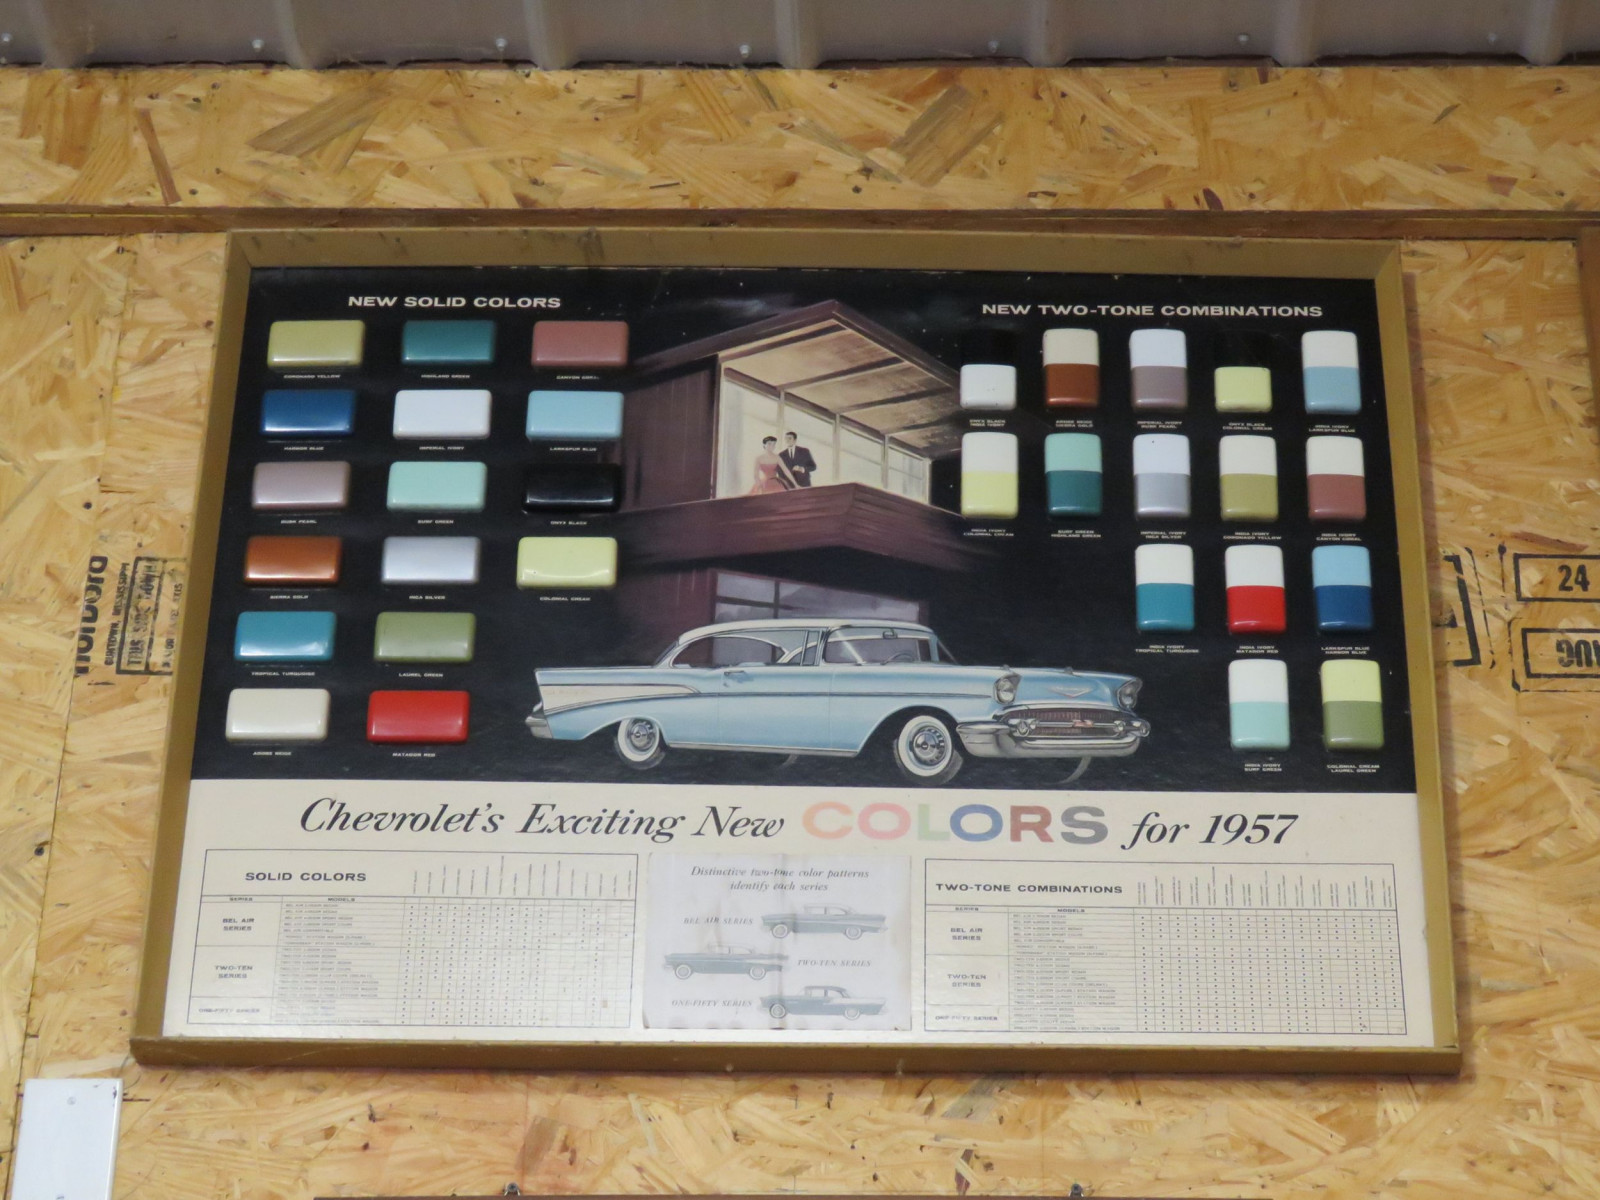 1957 Chervrolet Paint colors Framed Display - Image 1